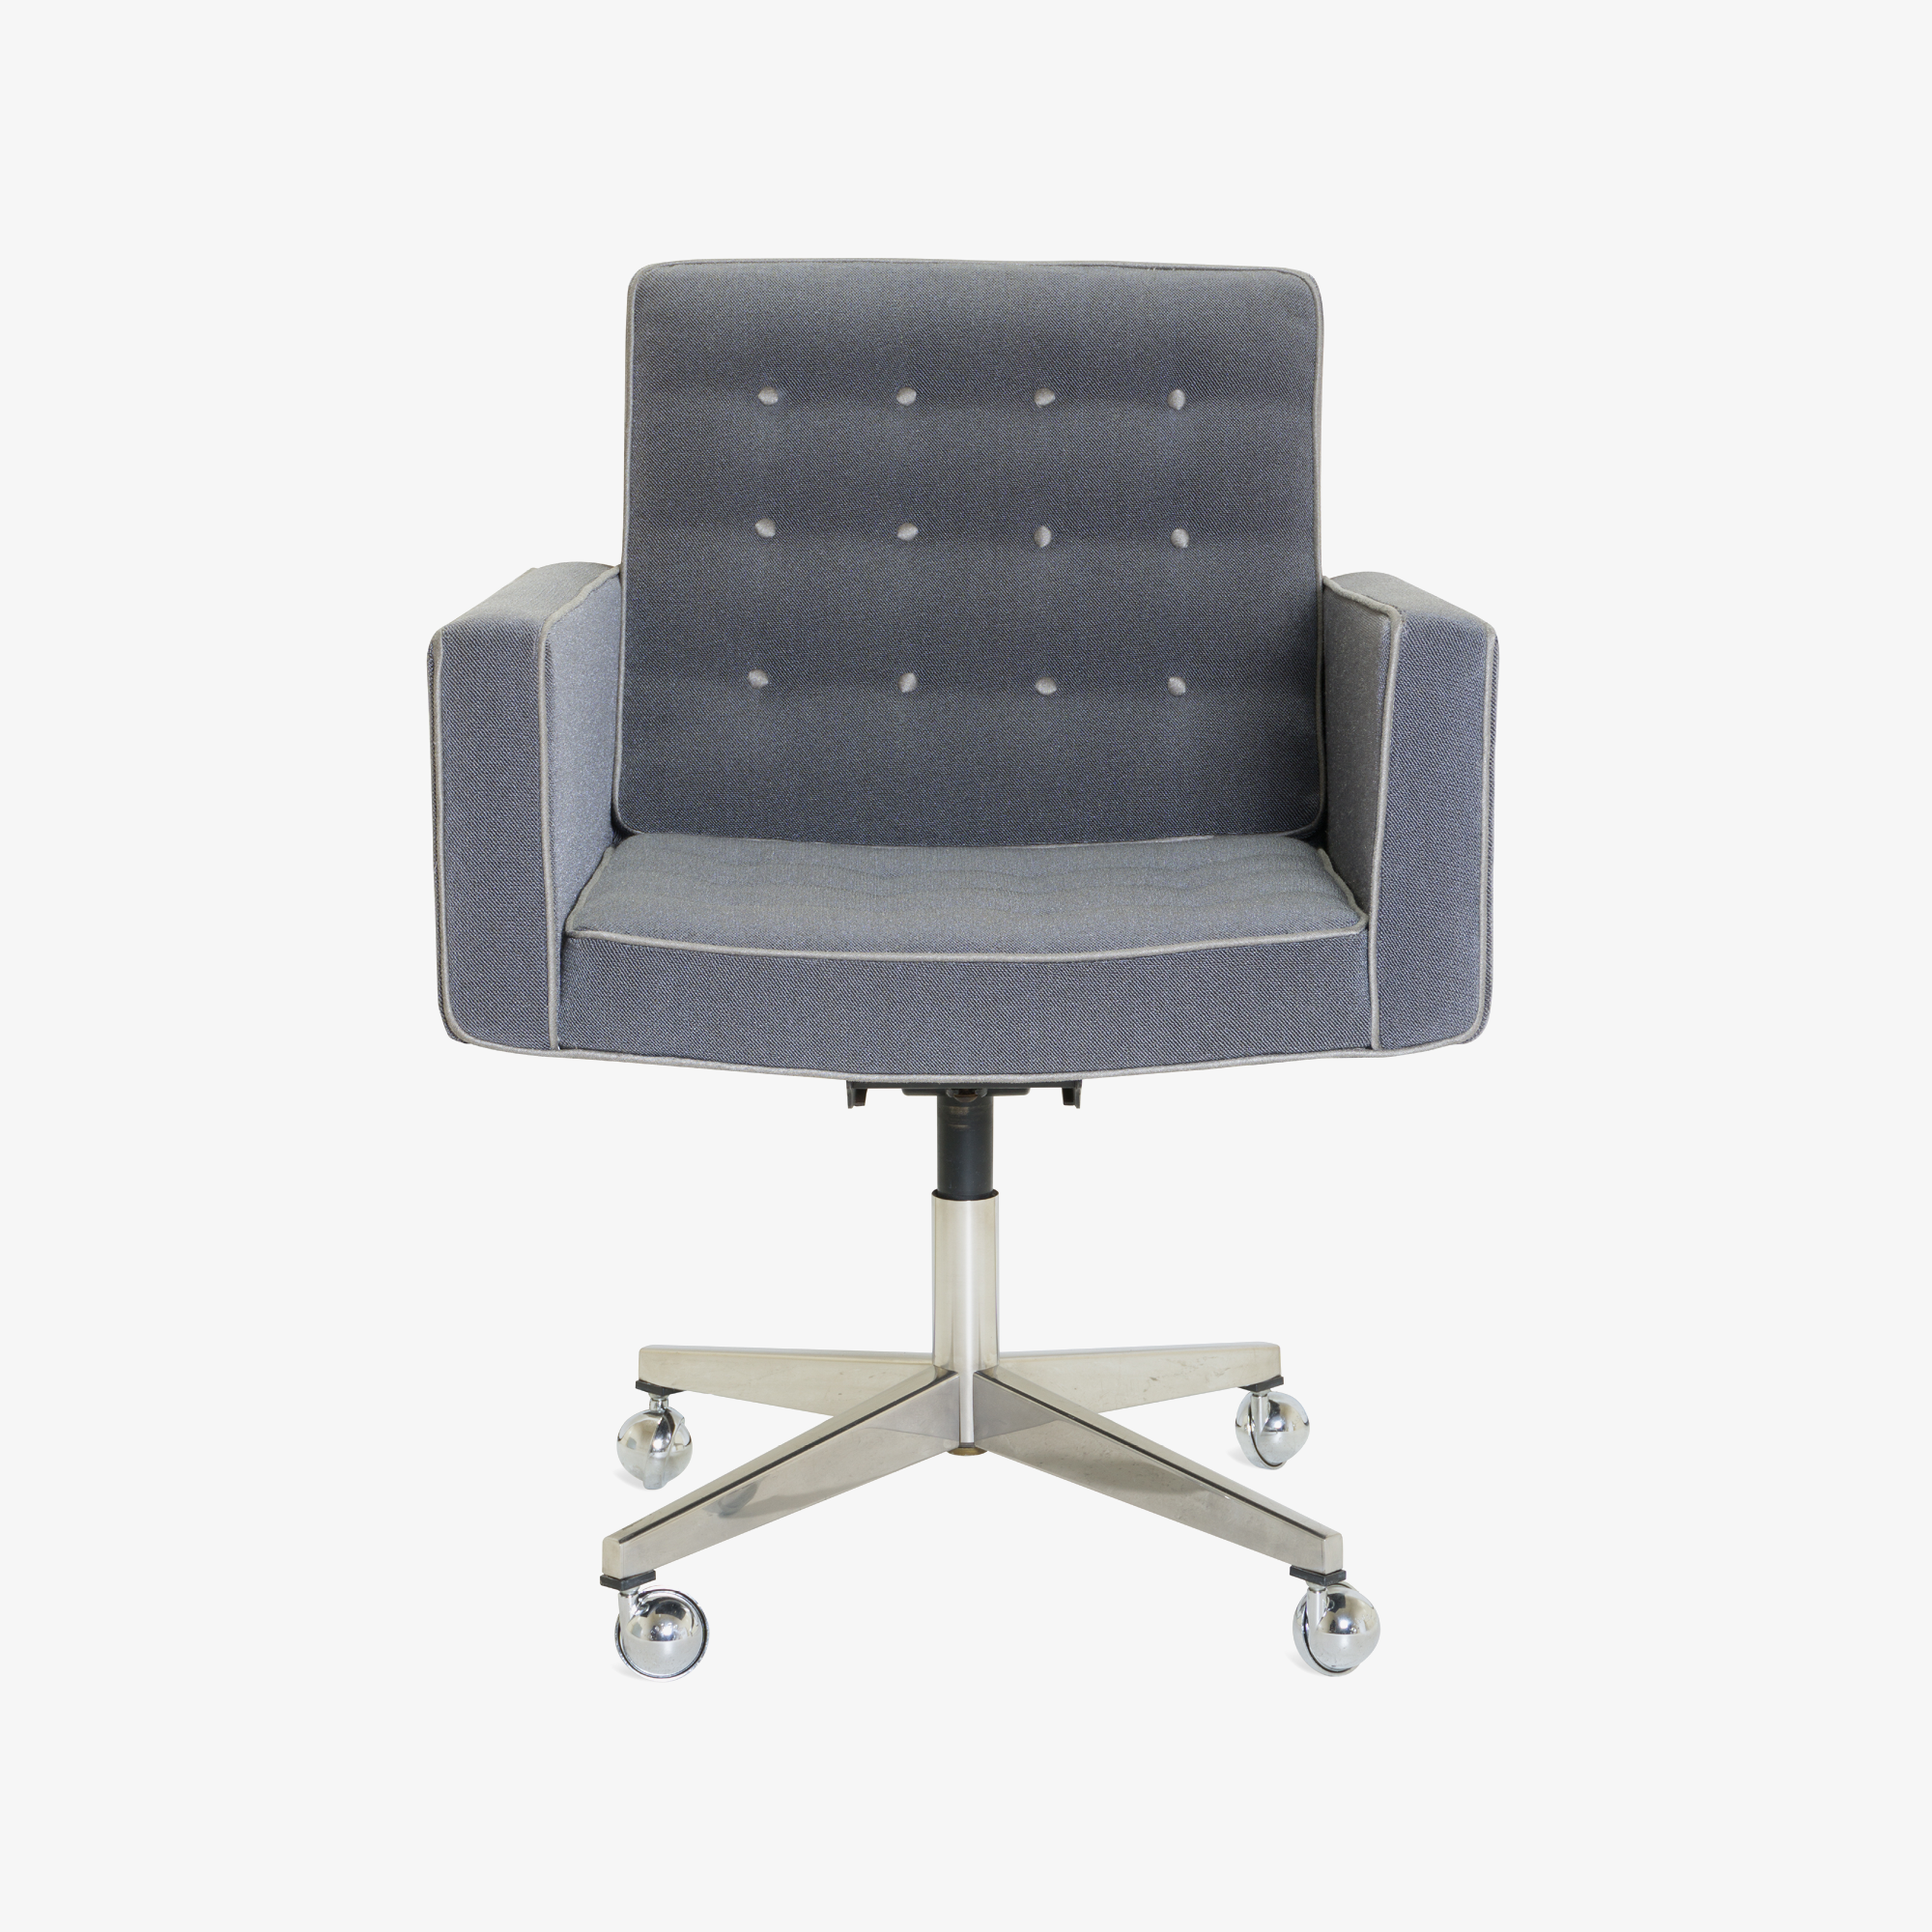 Executive Chair in Vintage KnollTextiles by Vincent Cafiero for Knoll.png